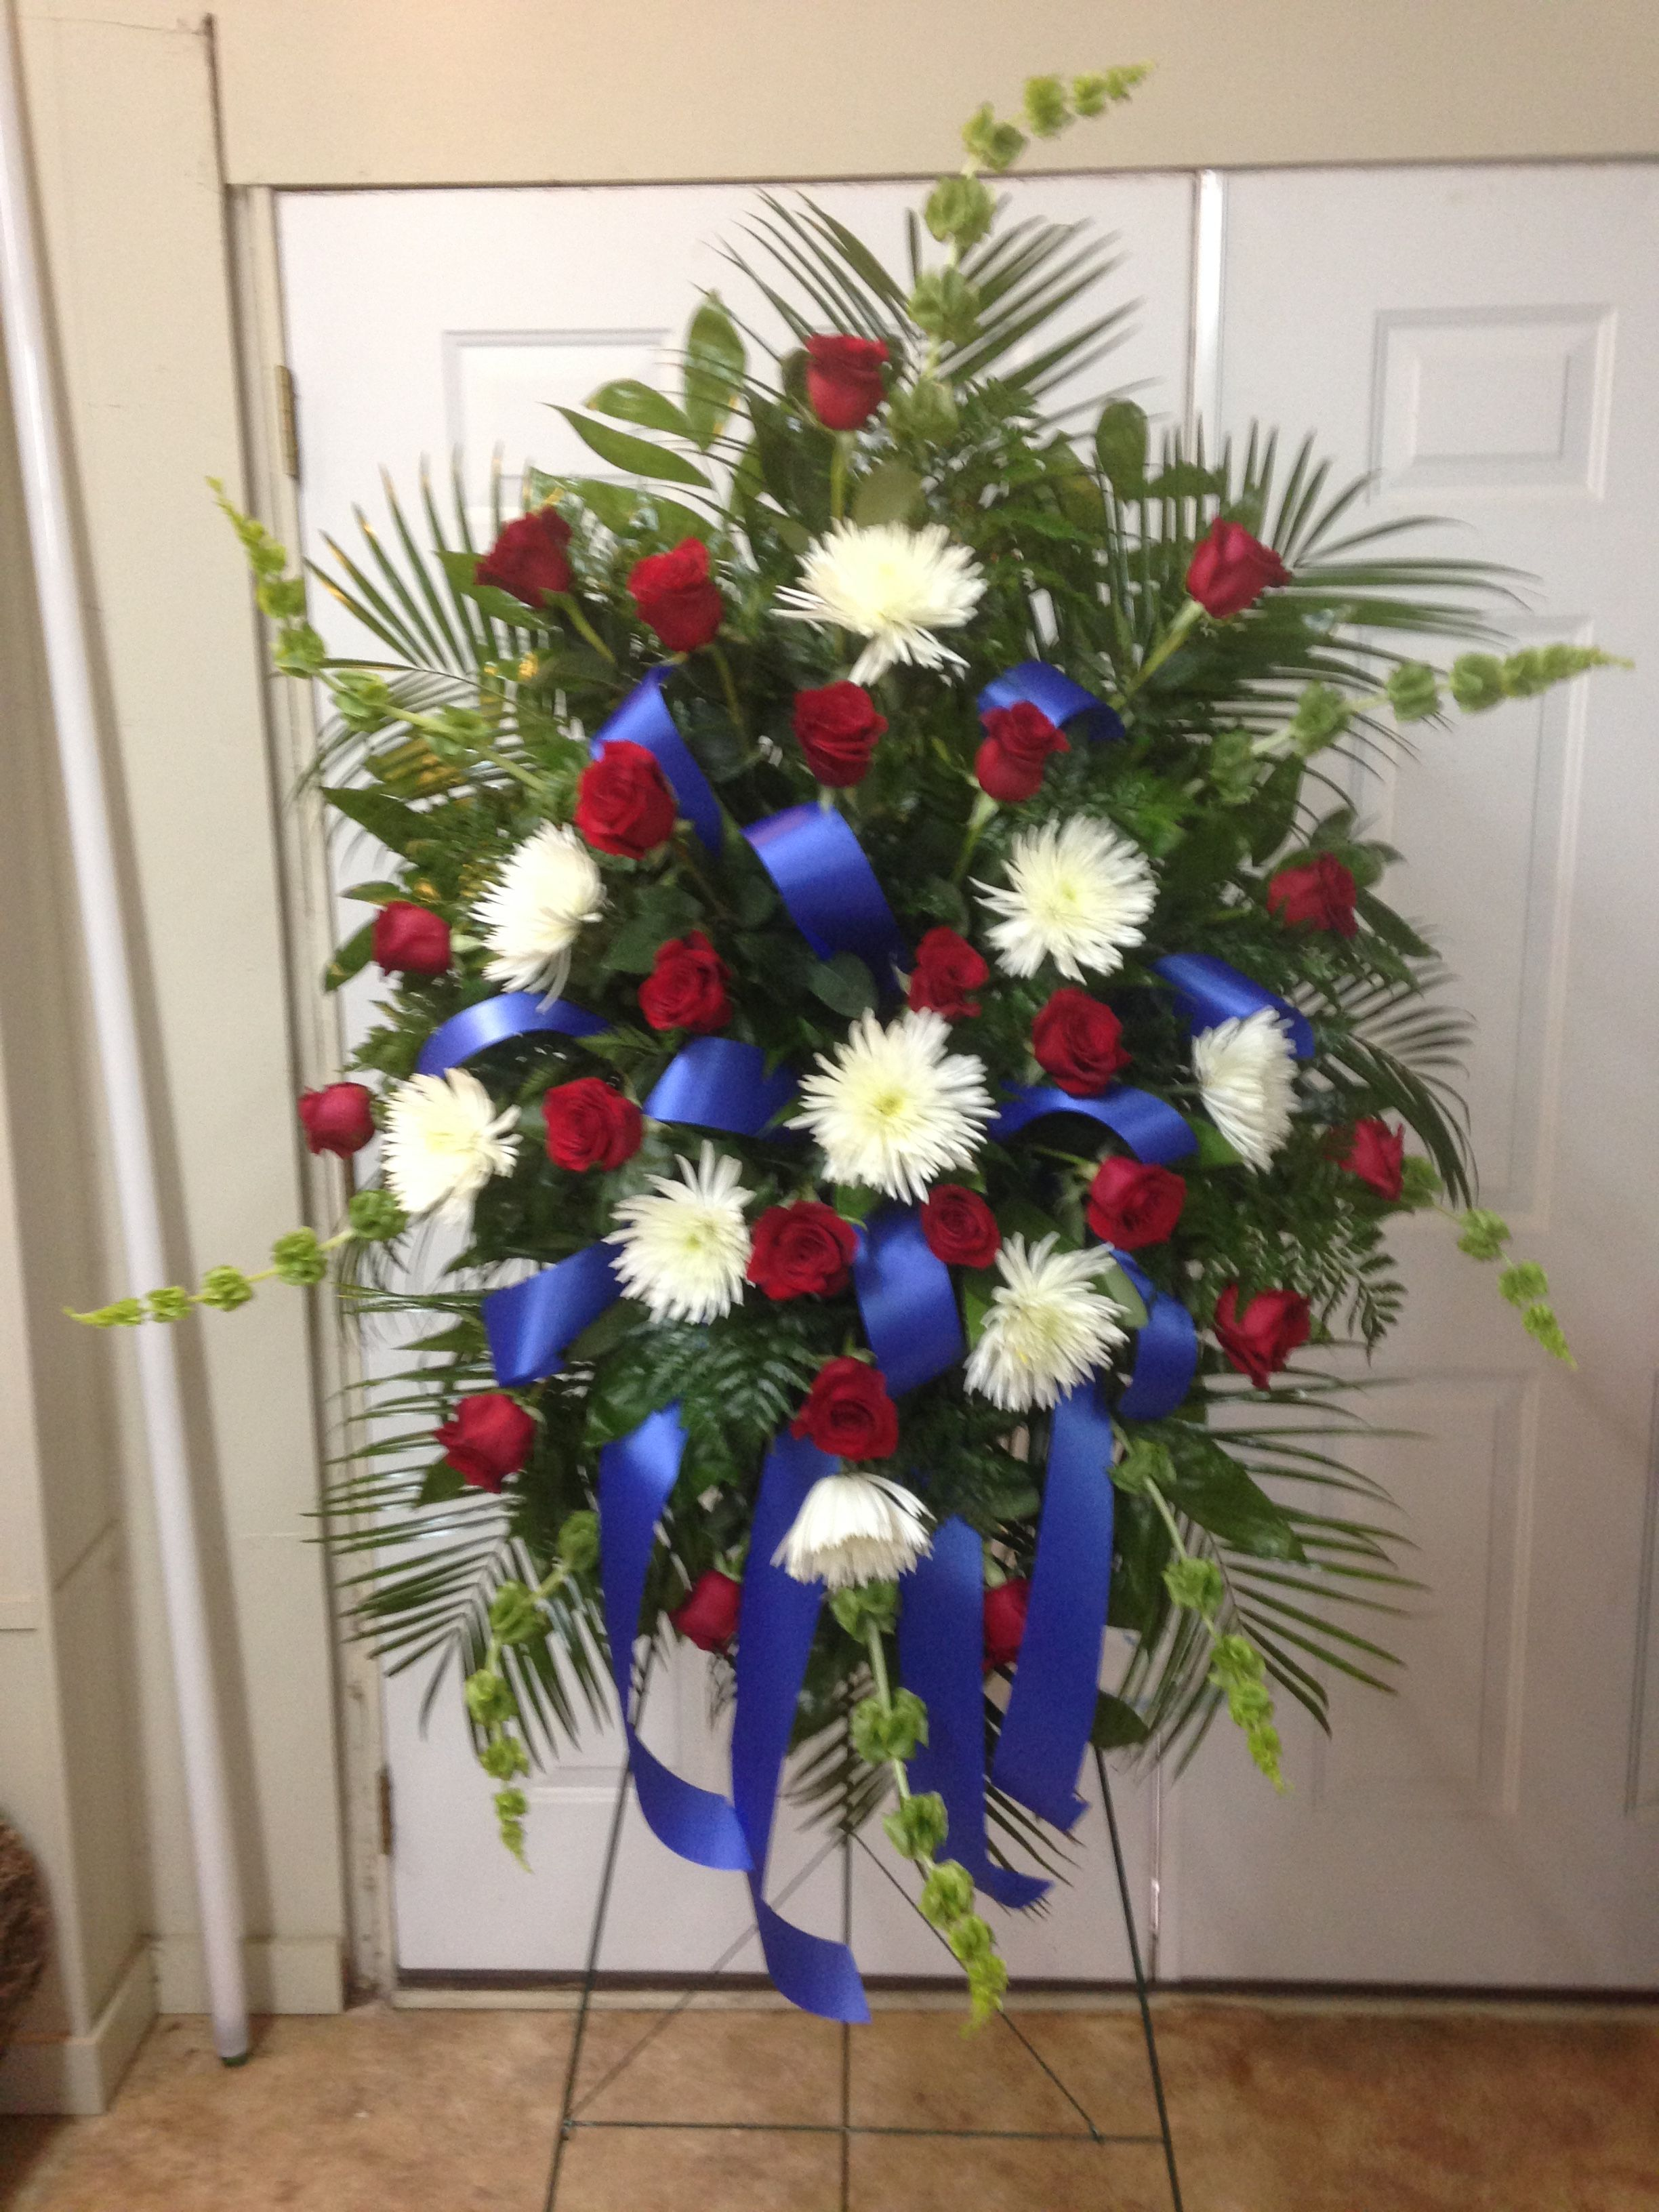 Live funeral spray using bells of ireland white fuji mums and red live funeral spray using bells of ireland white fuji mums and red roses accented with royal blue ribbon veteran funeral smith october 2015 izmirmasajfo